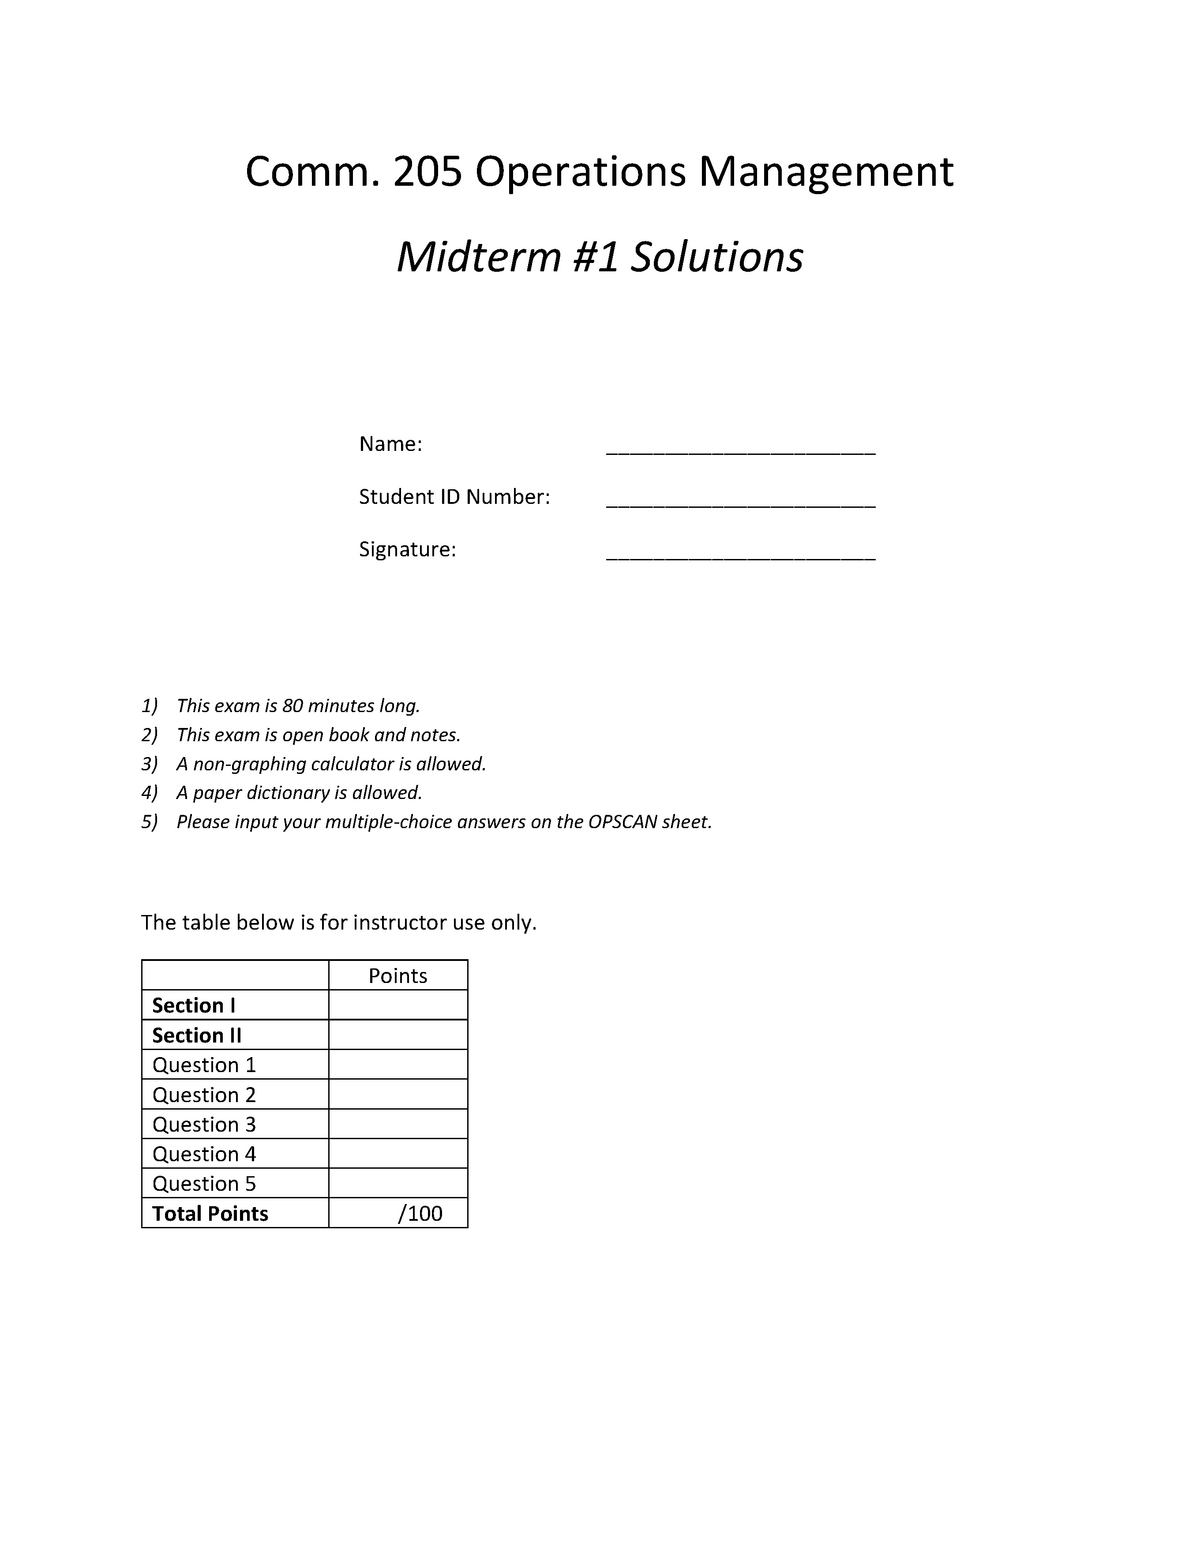 Exam 3 February 2015, questions and answers - Comm 205 3